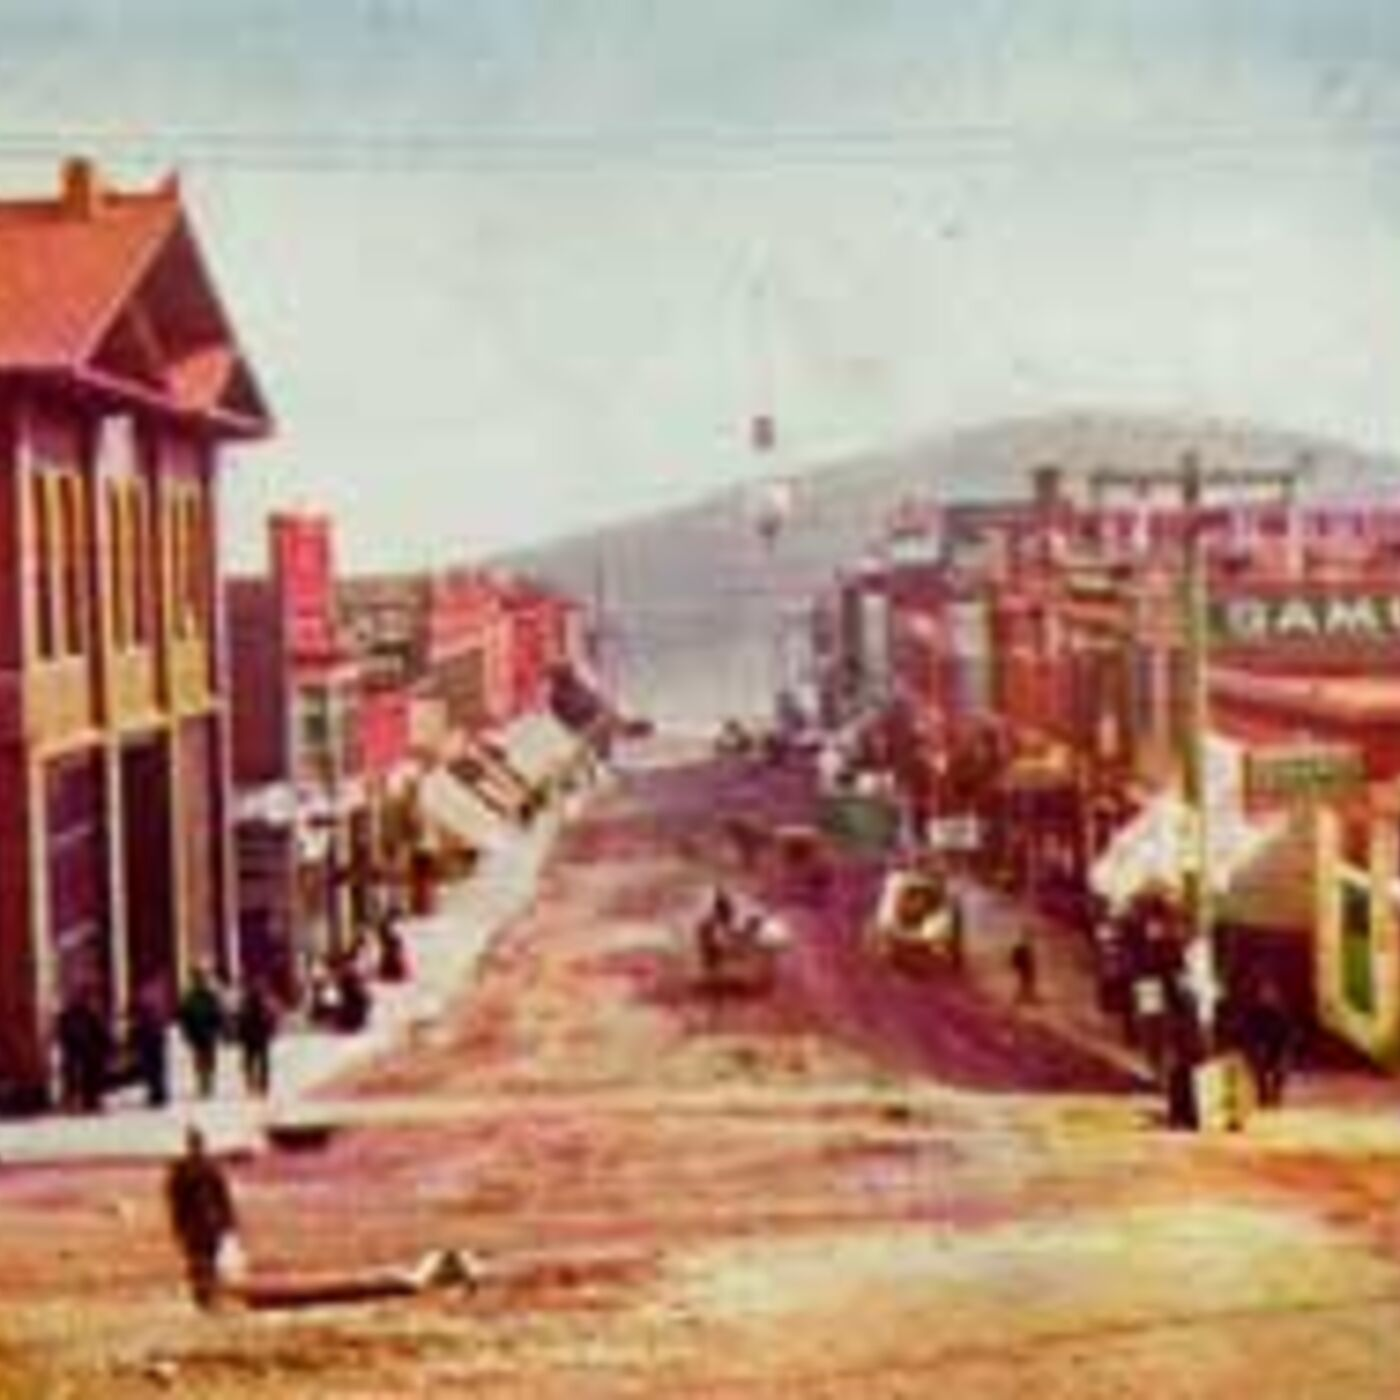 Historical Murders: A Look at Victor, CO